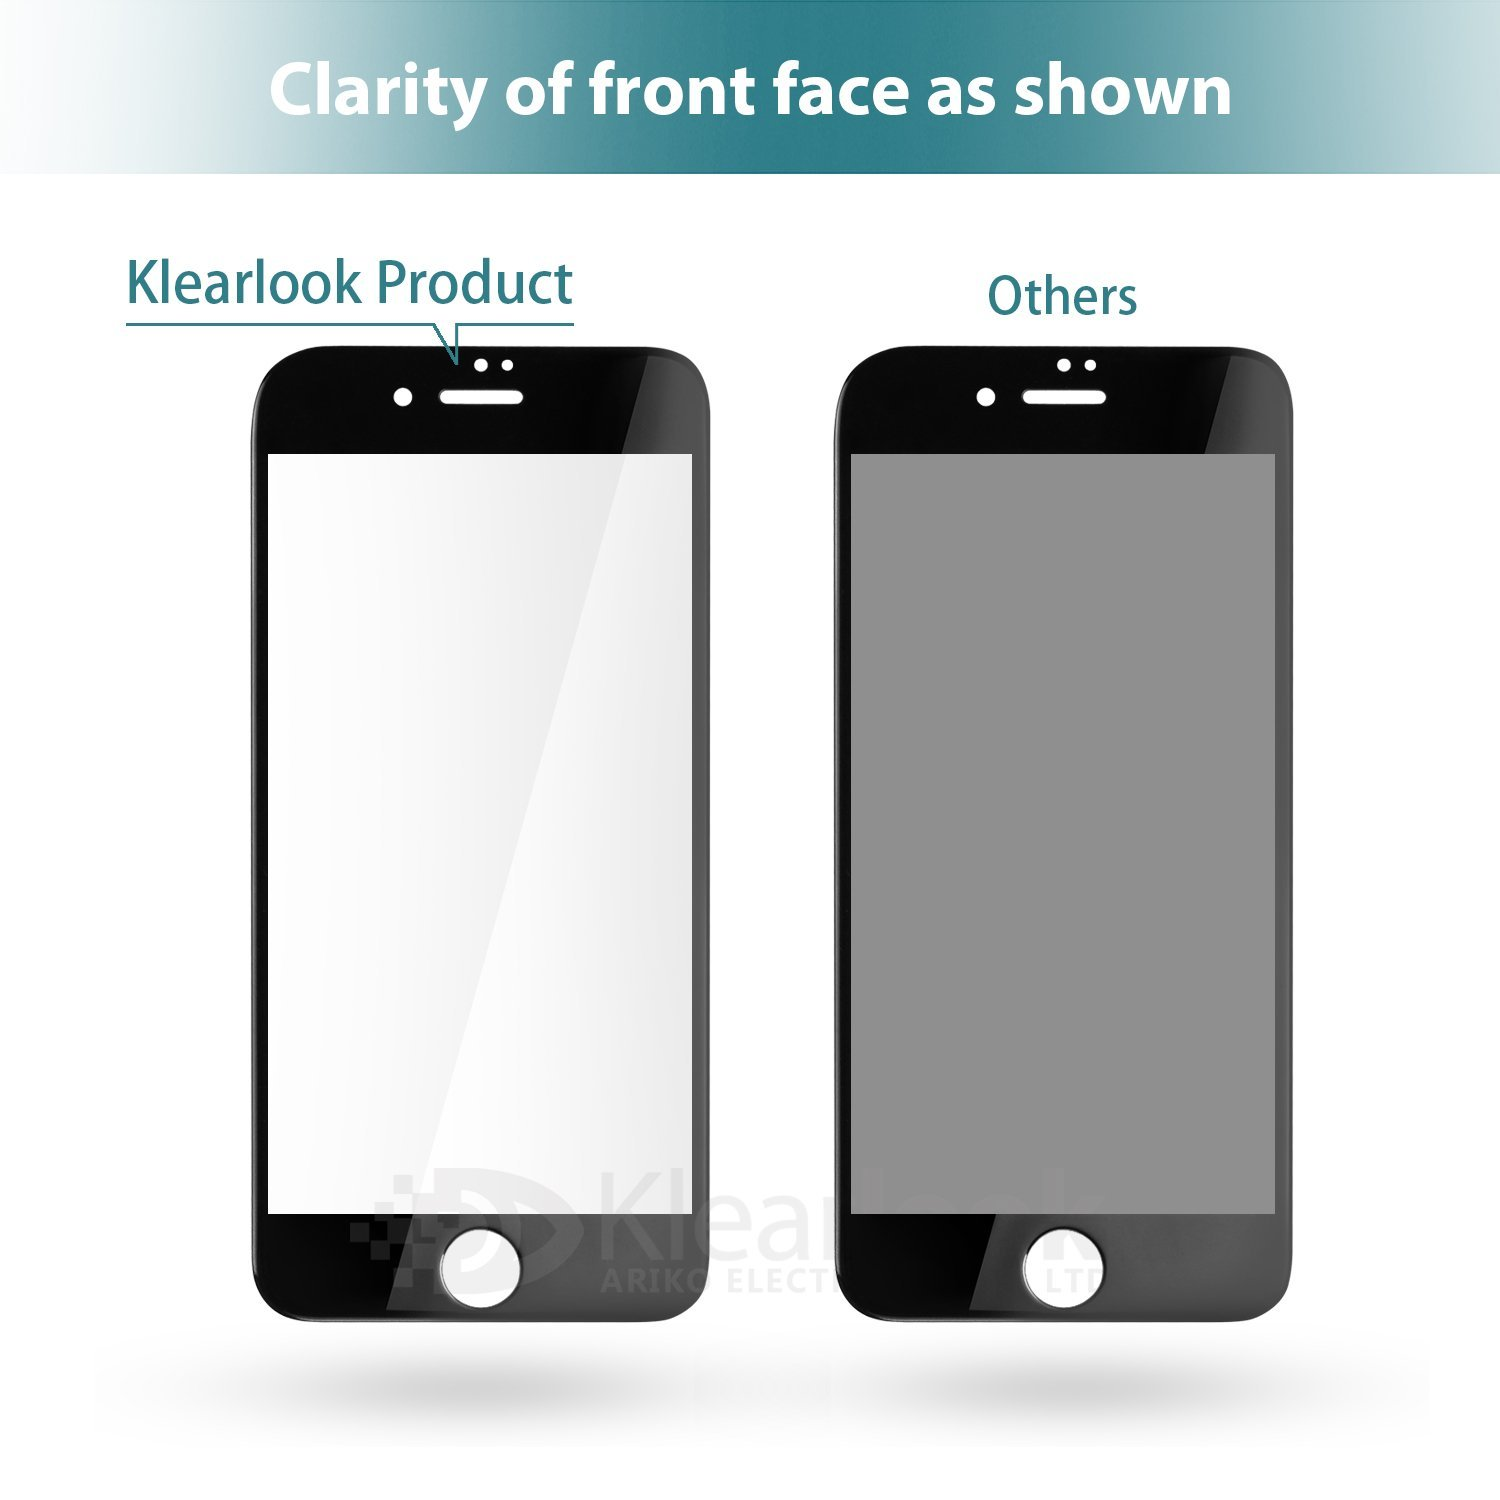 Visual hacking is on the rise. A privacy screen protector can help prevent that. Here are 20 laptop privacy screen protectors to consider - Klearlook